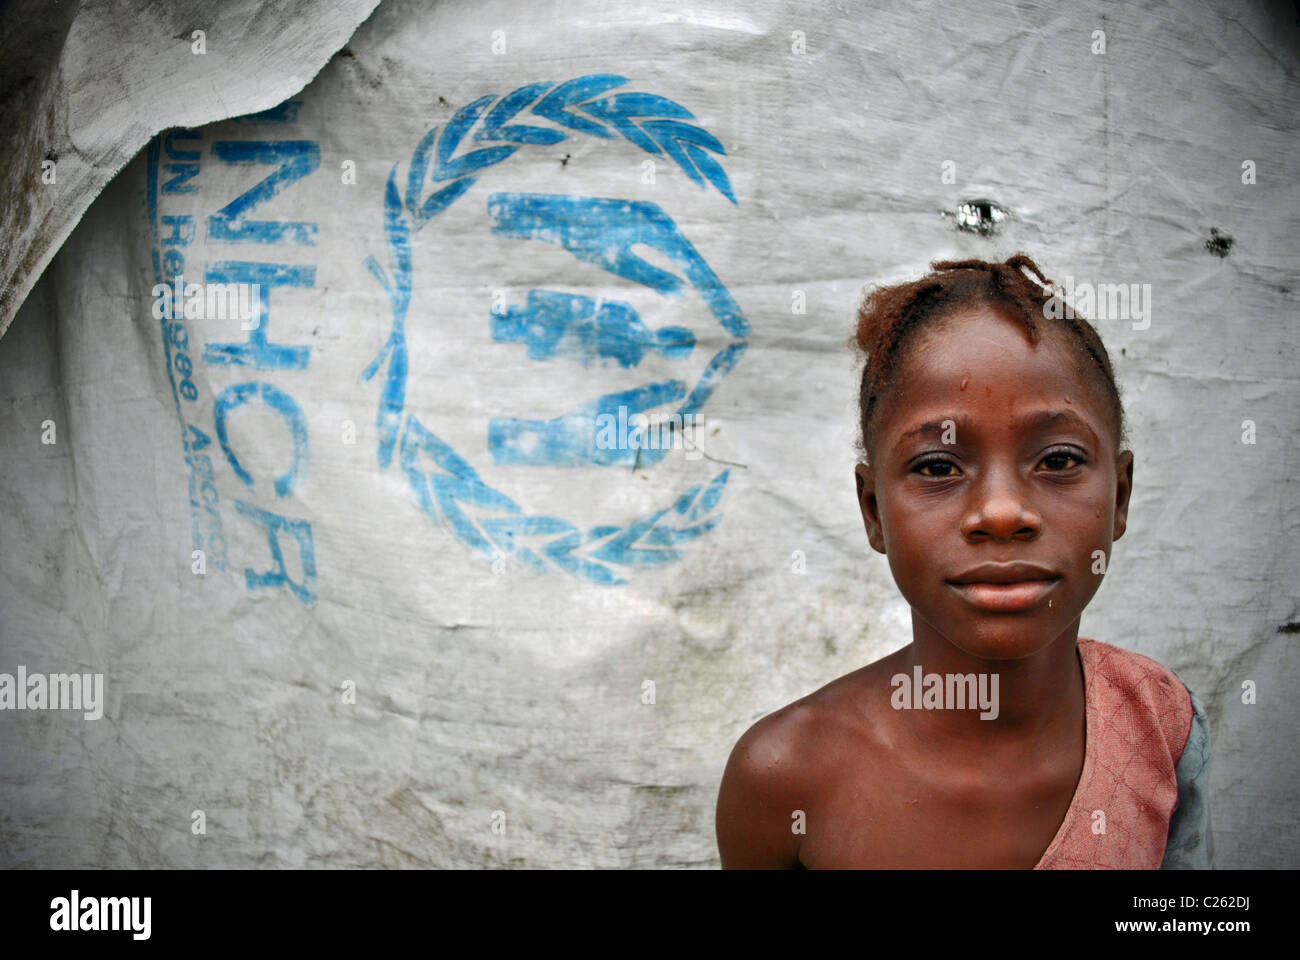 Liberian refugee girl in Tabou transit camp, Ivory Coast, West Africa - Stock Image